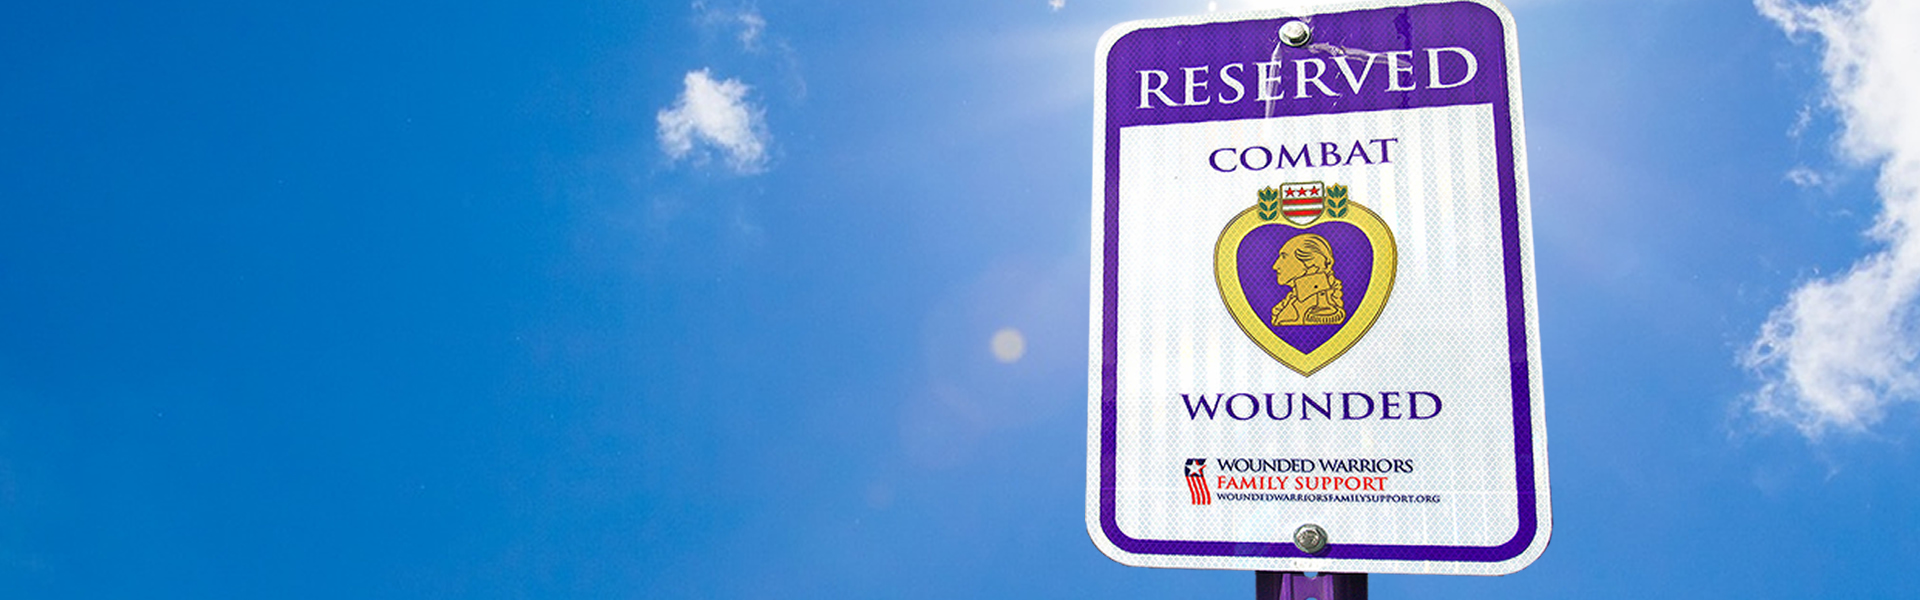 Combat Wounded Parking Signs